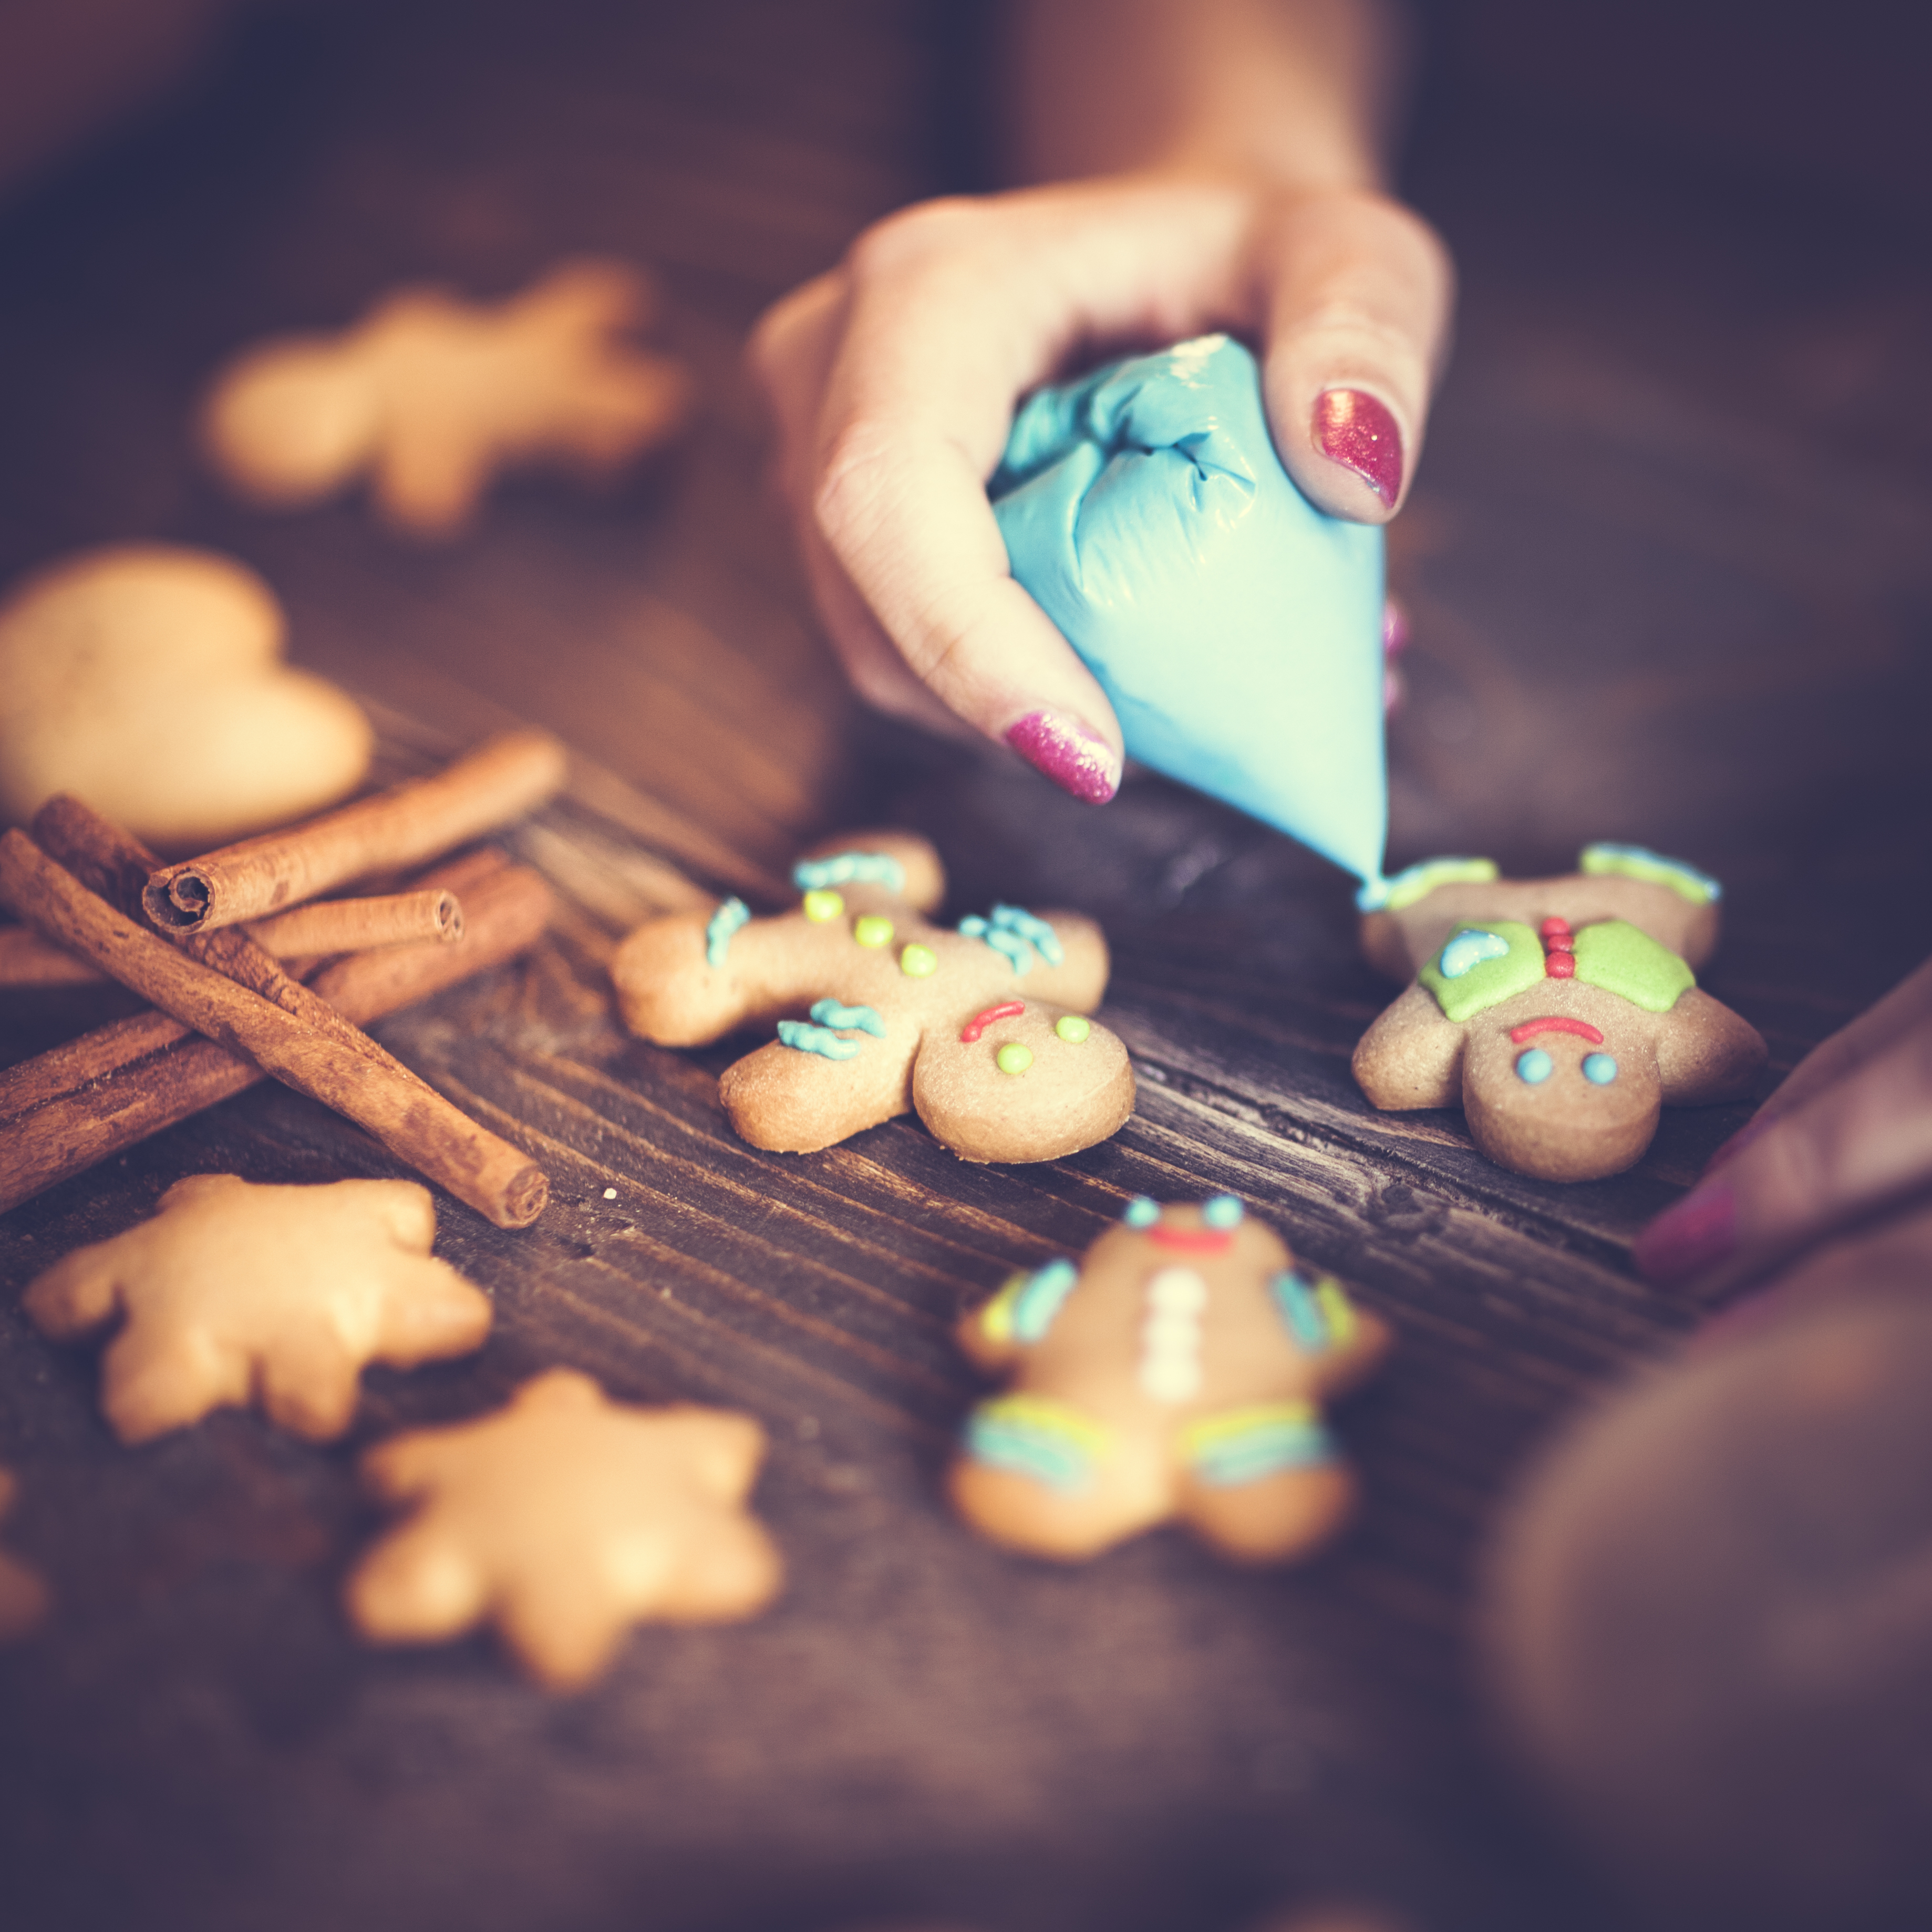 7 Crowd-Pleasing Gluten-Free Treats for the Holidays